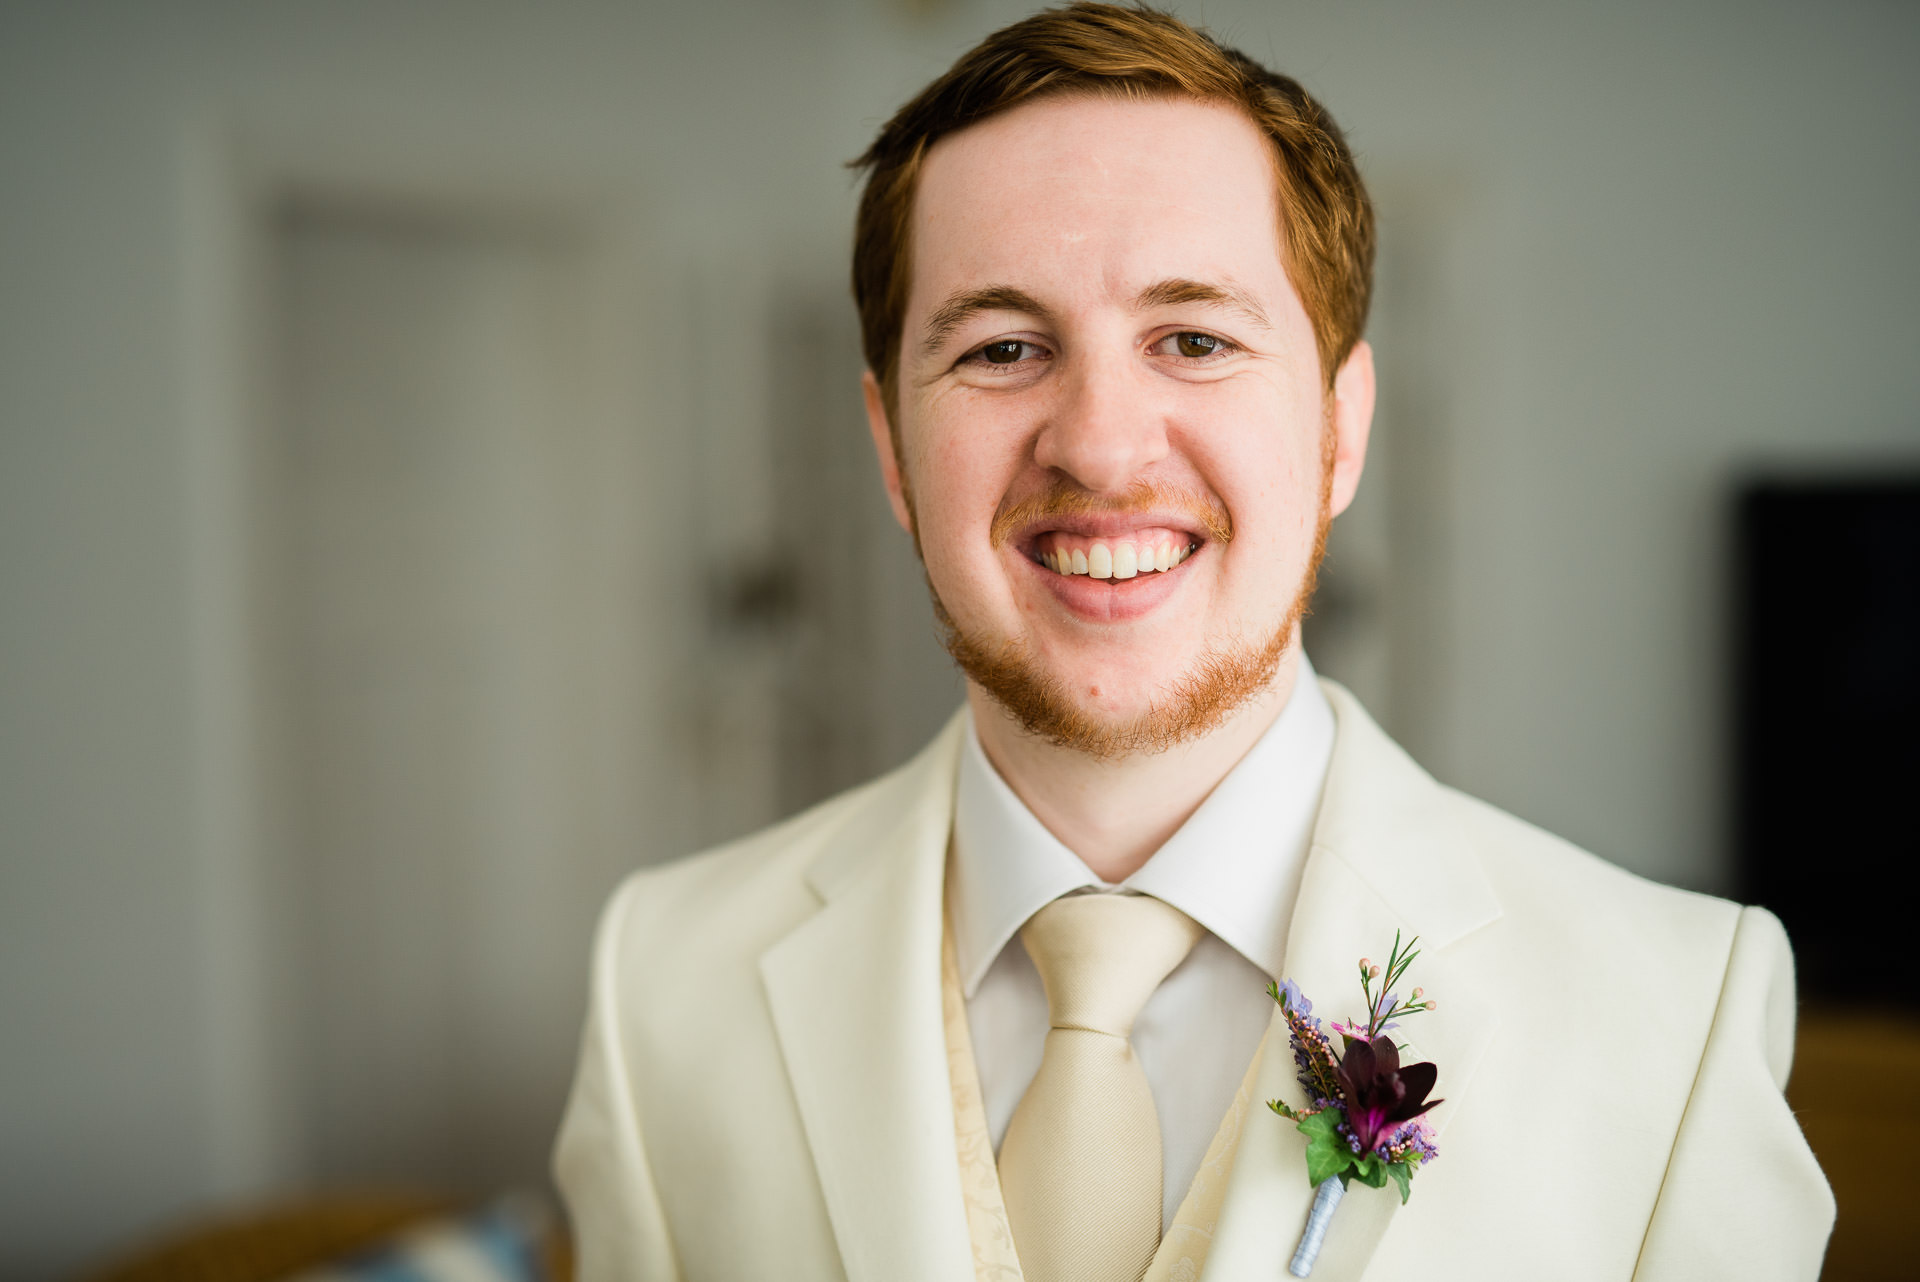 Groom in White Tie and Suit, ready for the wedding day - Fuzzy Pear Studio Sydney Wedding Photography